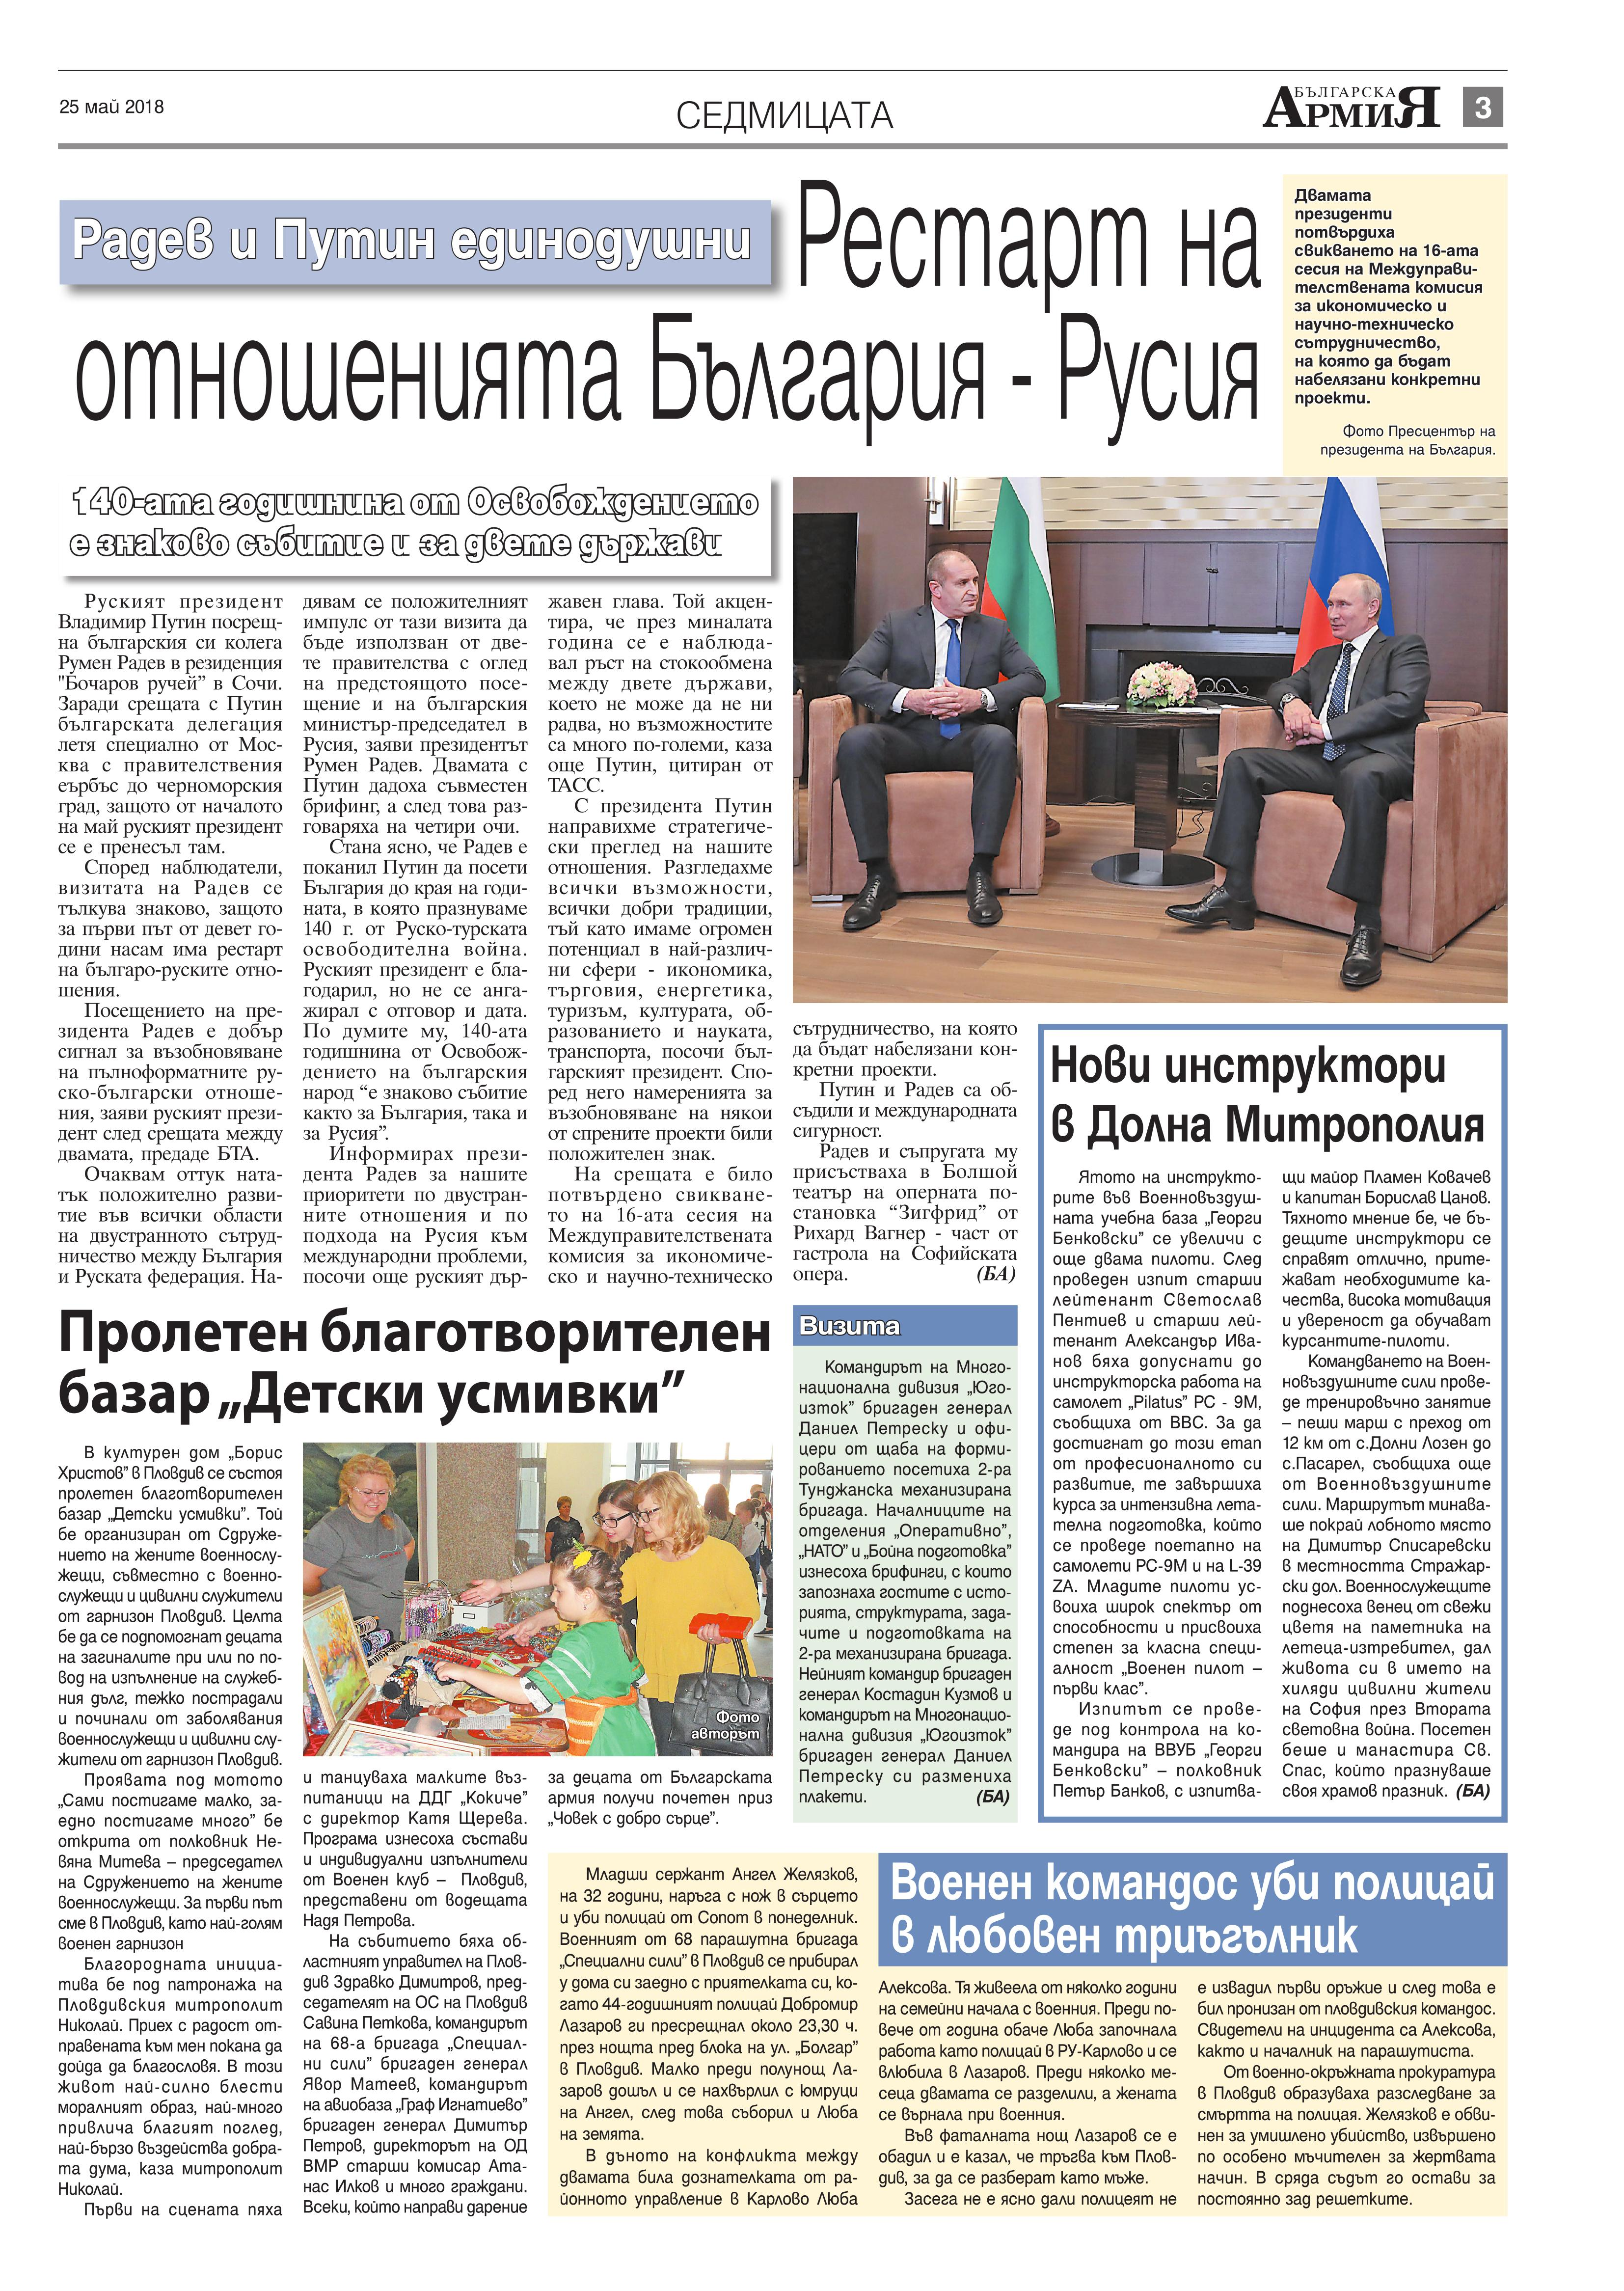 https://armymedia.bg/wp-content/uploads/2015/06/03.page1_-49.jpg